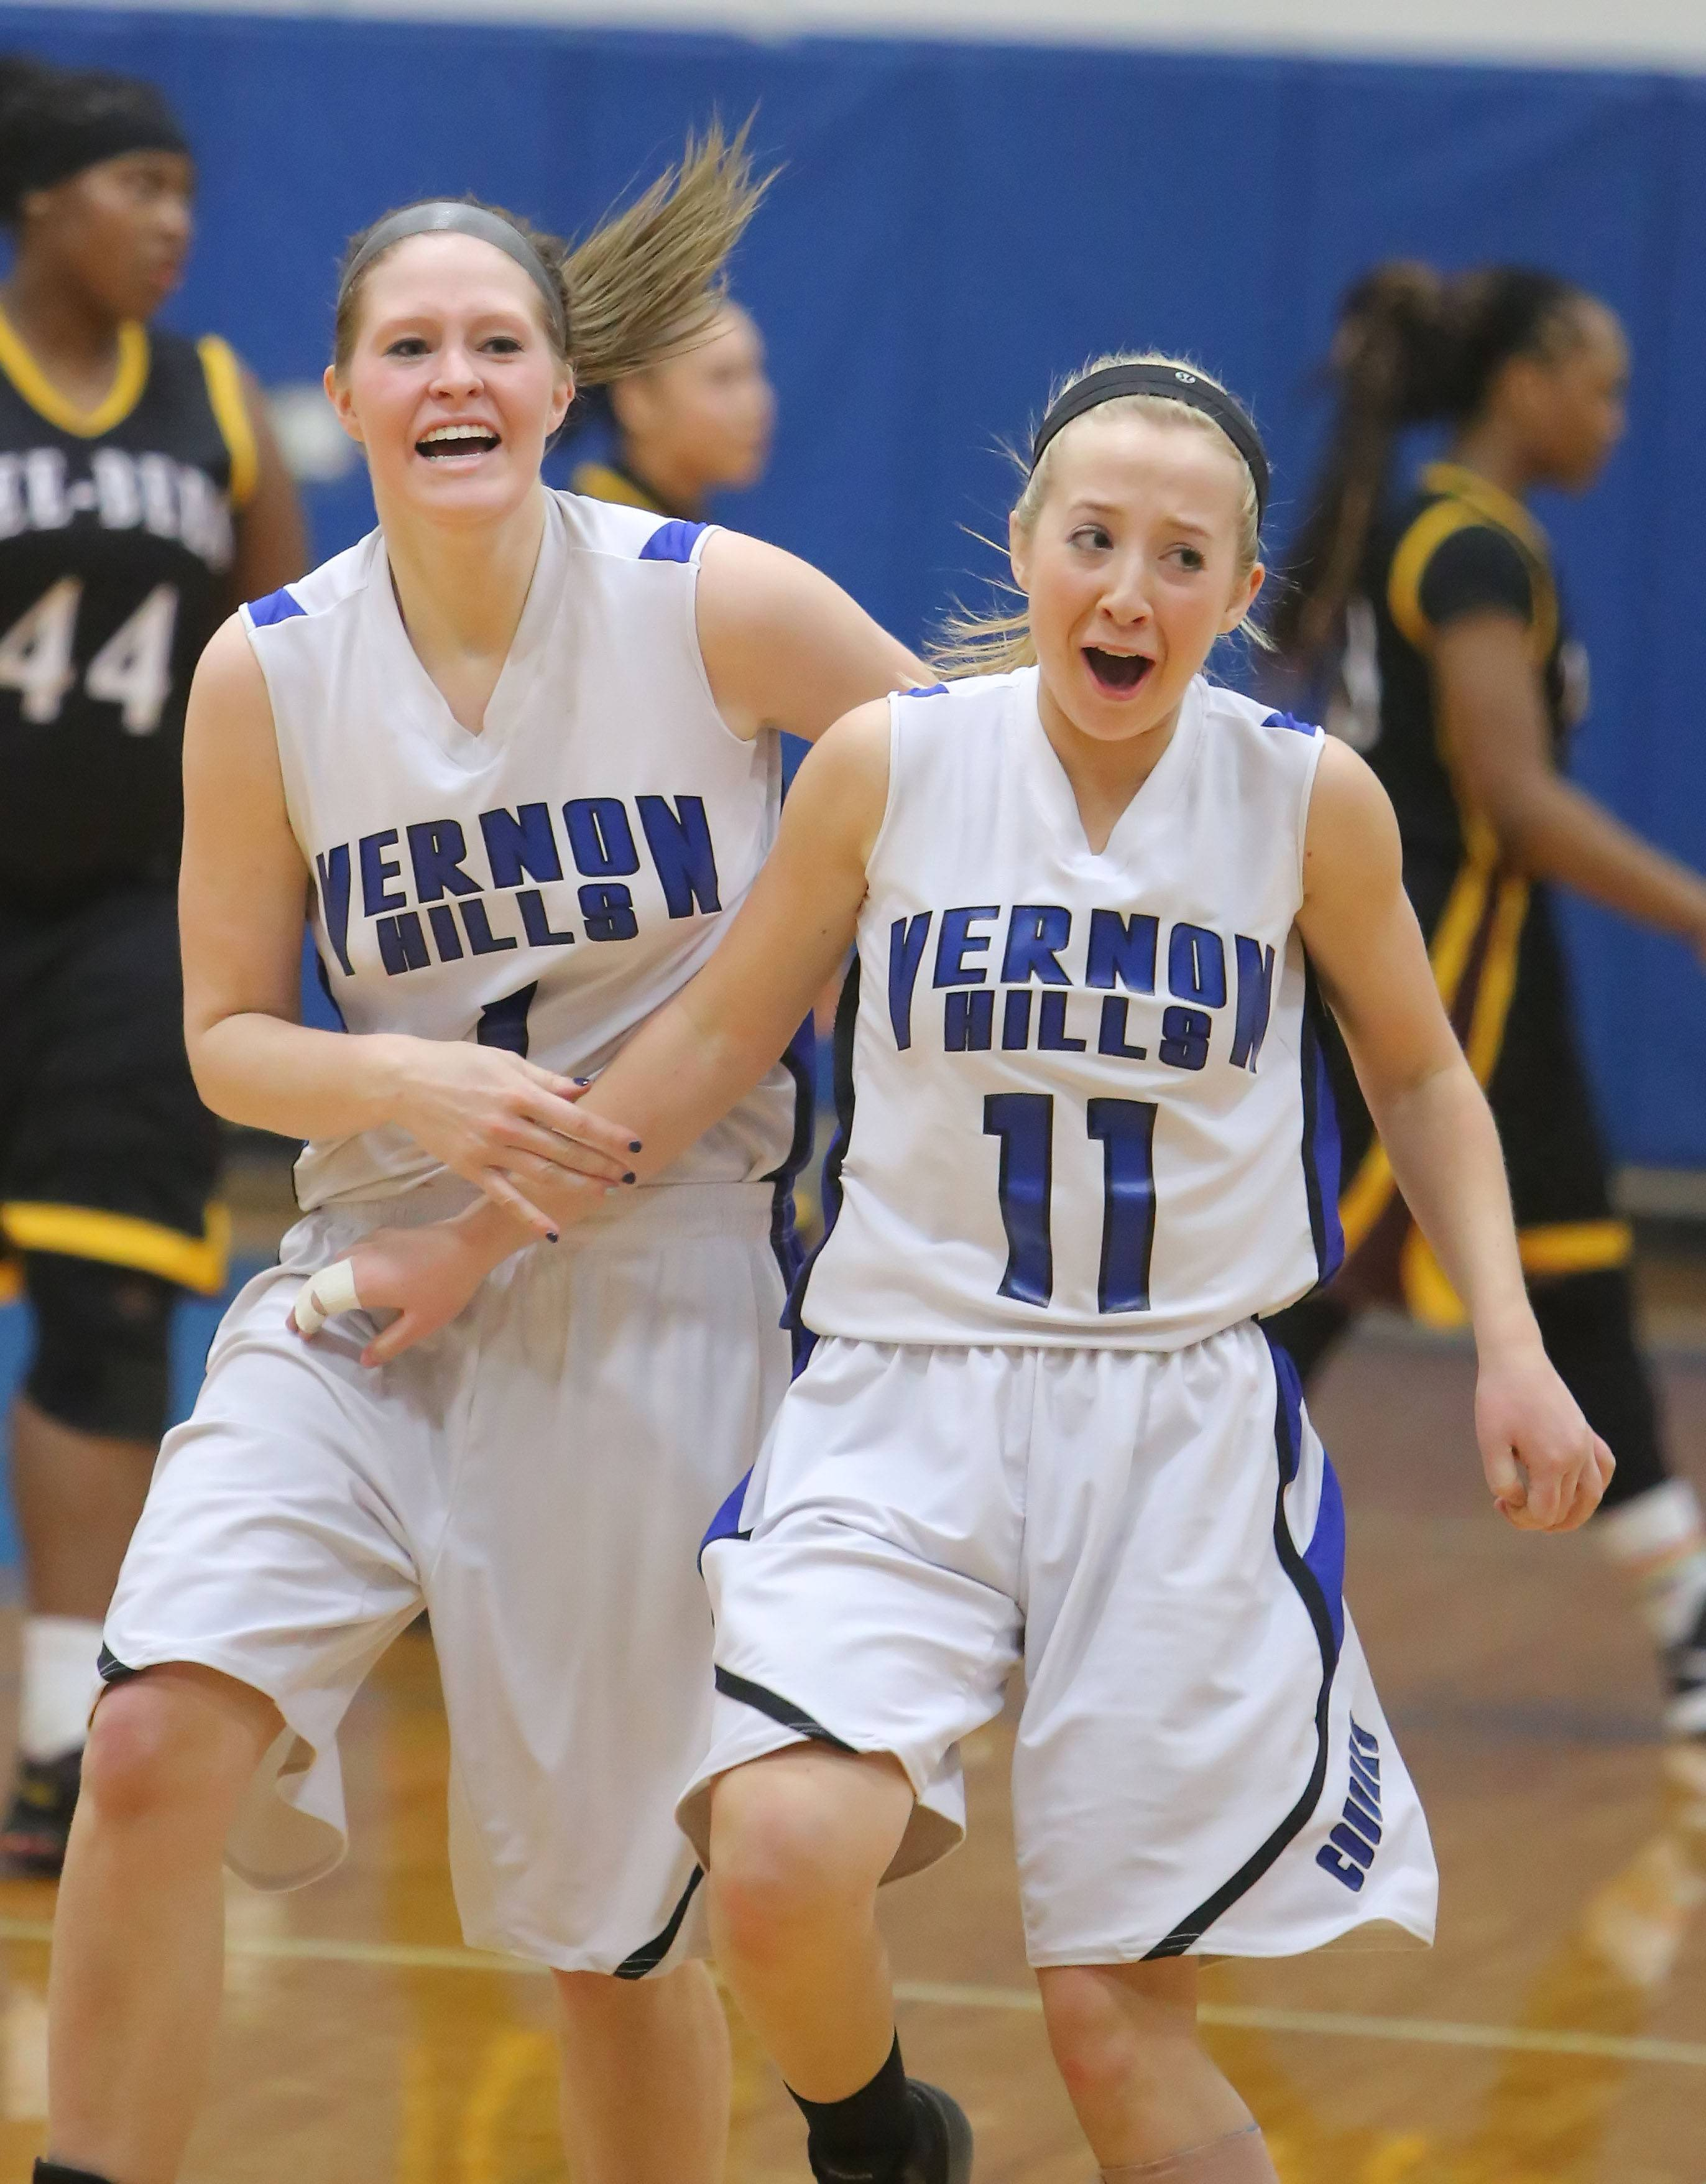 Vernon Hills' Sydney Smith, left, and Haley Lieberman celebrate after beating Zion-Benton in the North Suburban Conference championship game Wednesday night at Vernon Hills.